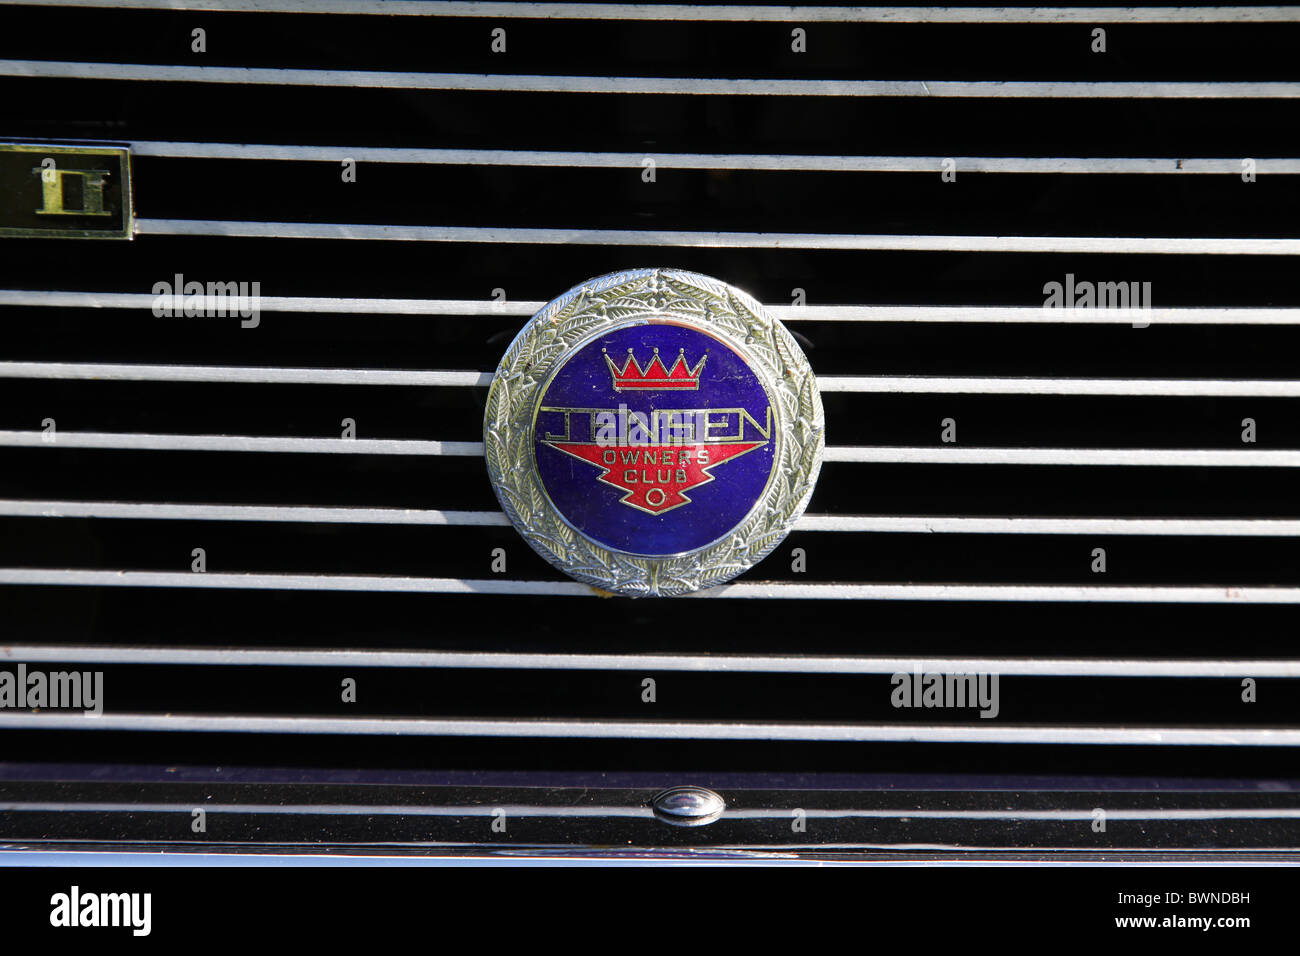 JENSON OWNERS CLUB BADGE STAINDROP NORTH YORKSHIRE RABY CASTLE STAINDROP NORTH YORKSHIRE STAINDROP NORTH YORKSHIRE - Stock Image